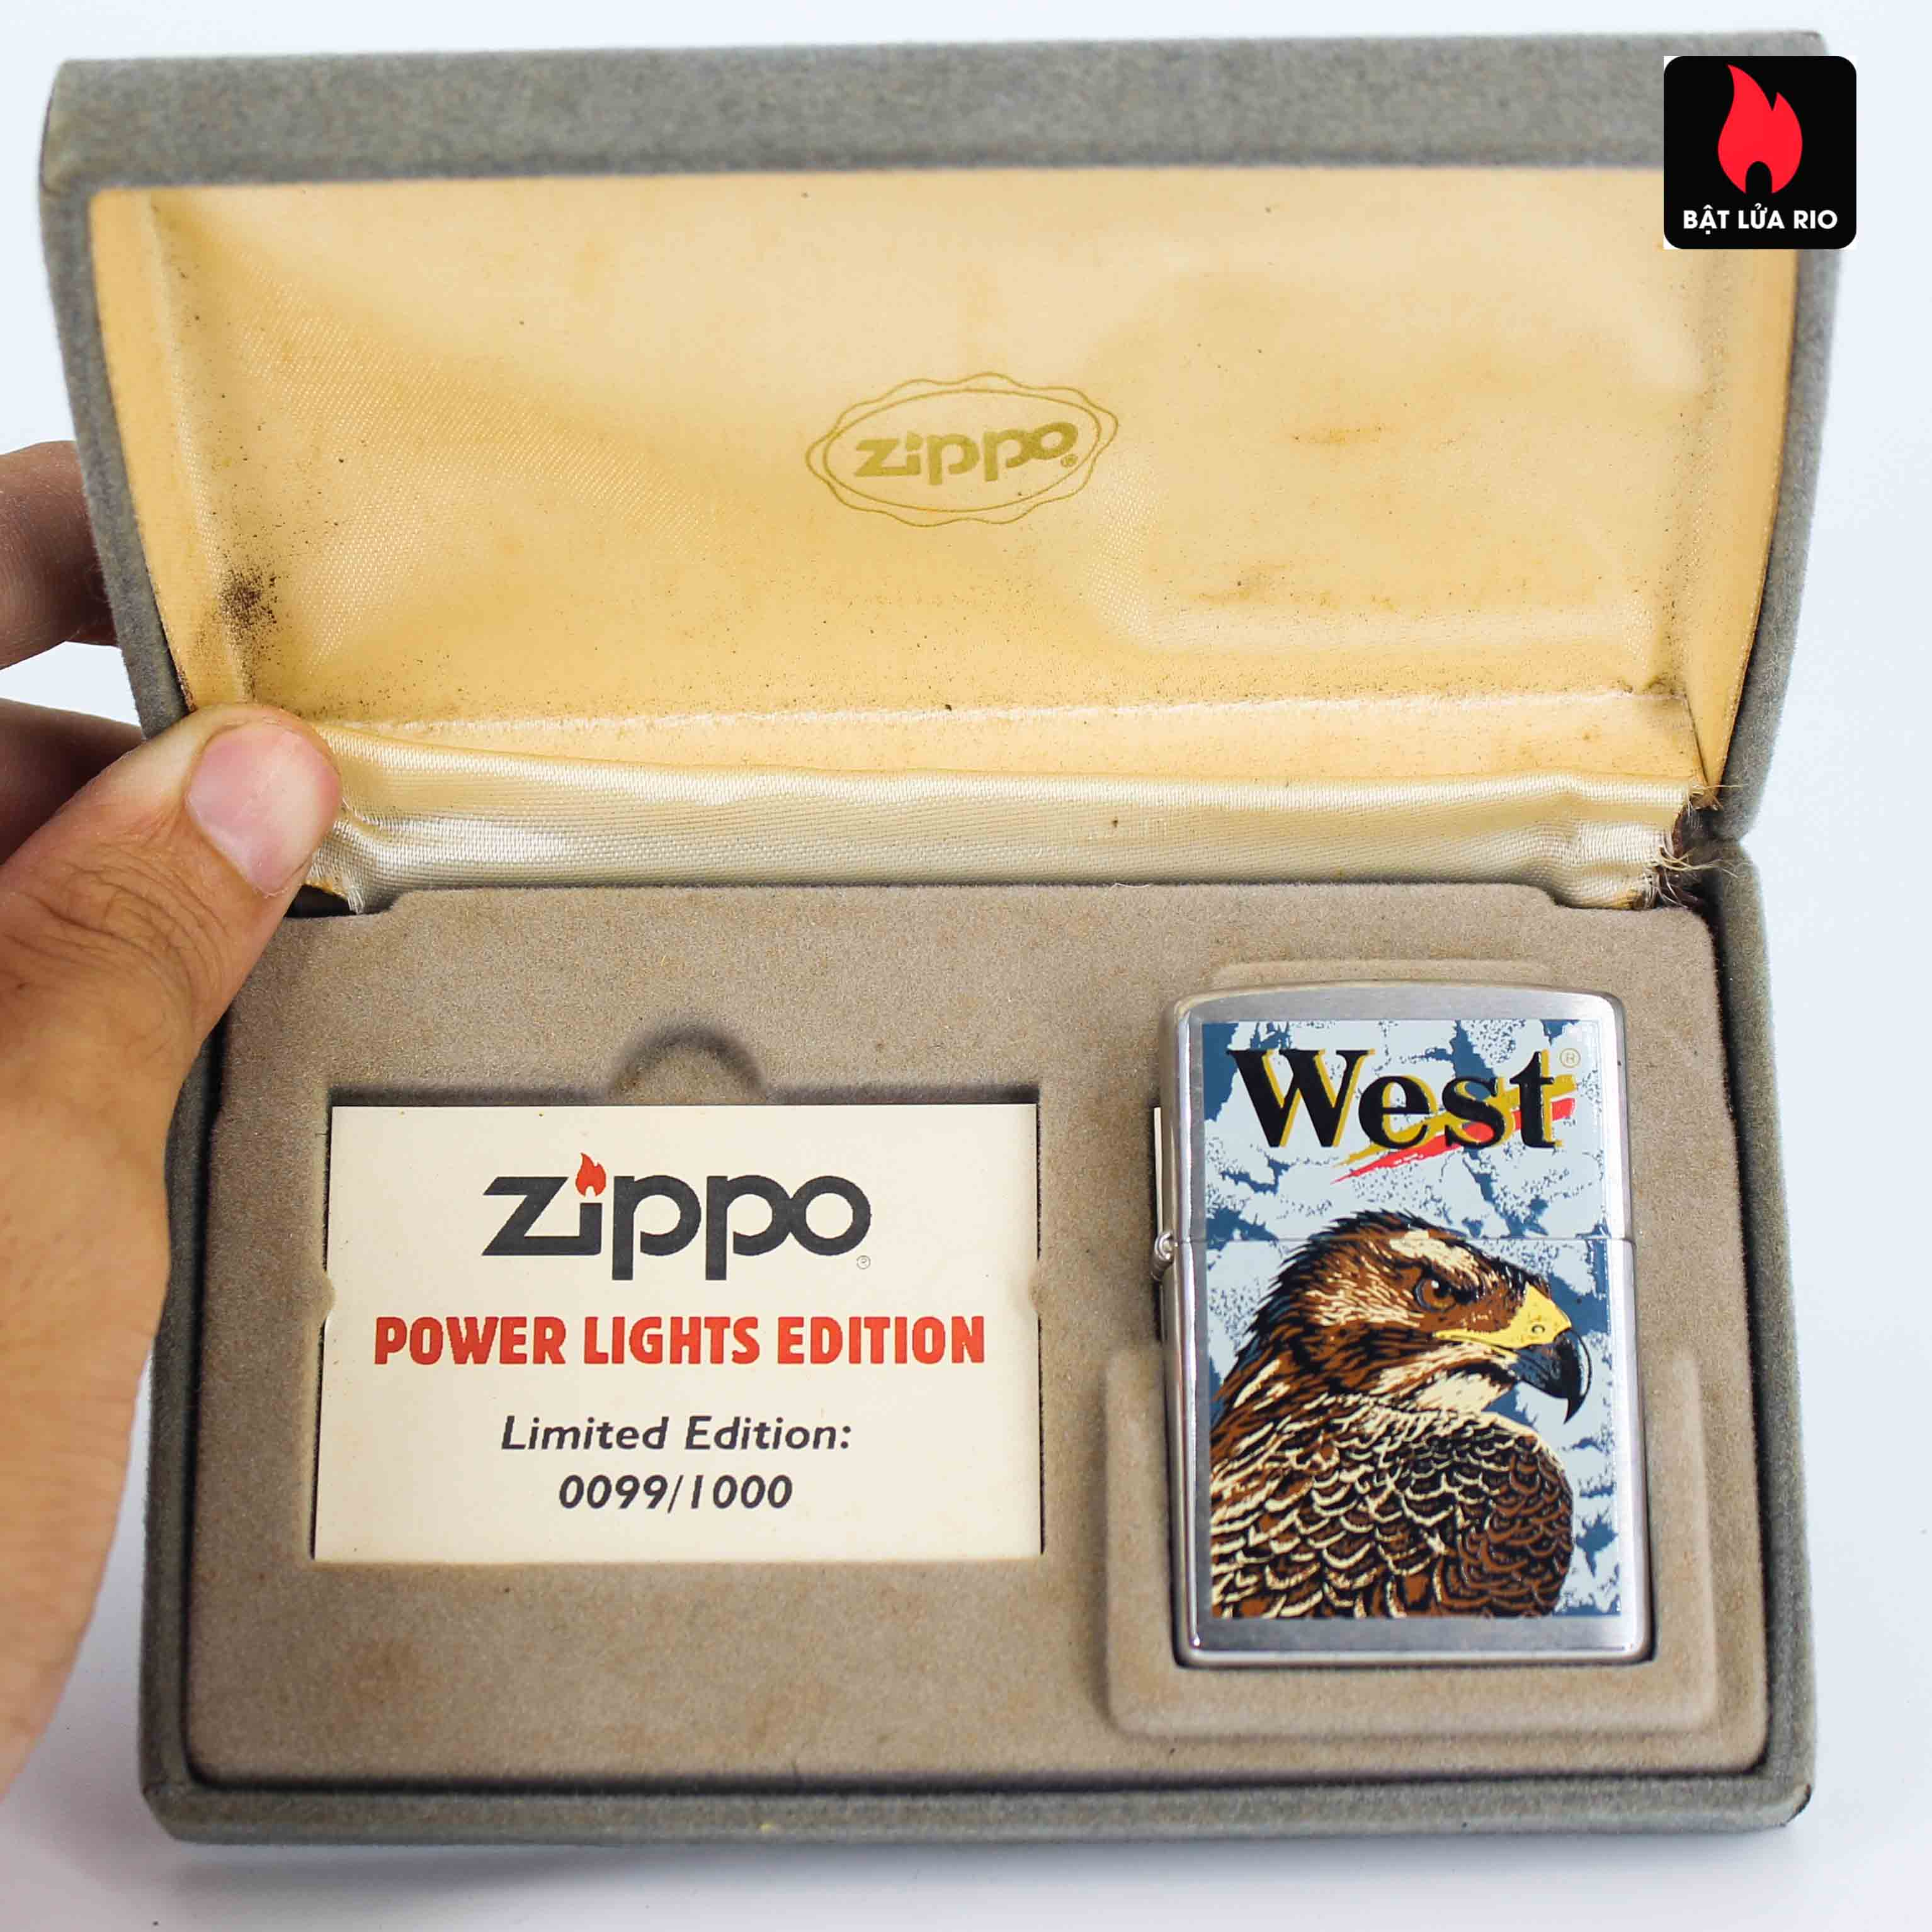 Zippo 2001 - Wild Lighters Edition - Limited Edition /1000 9